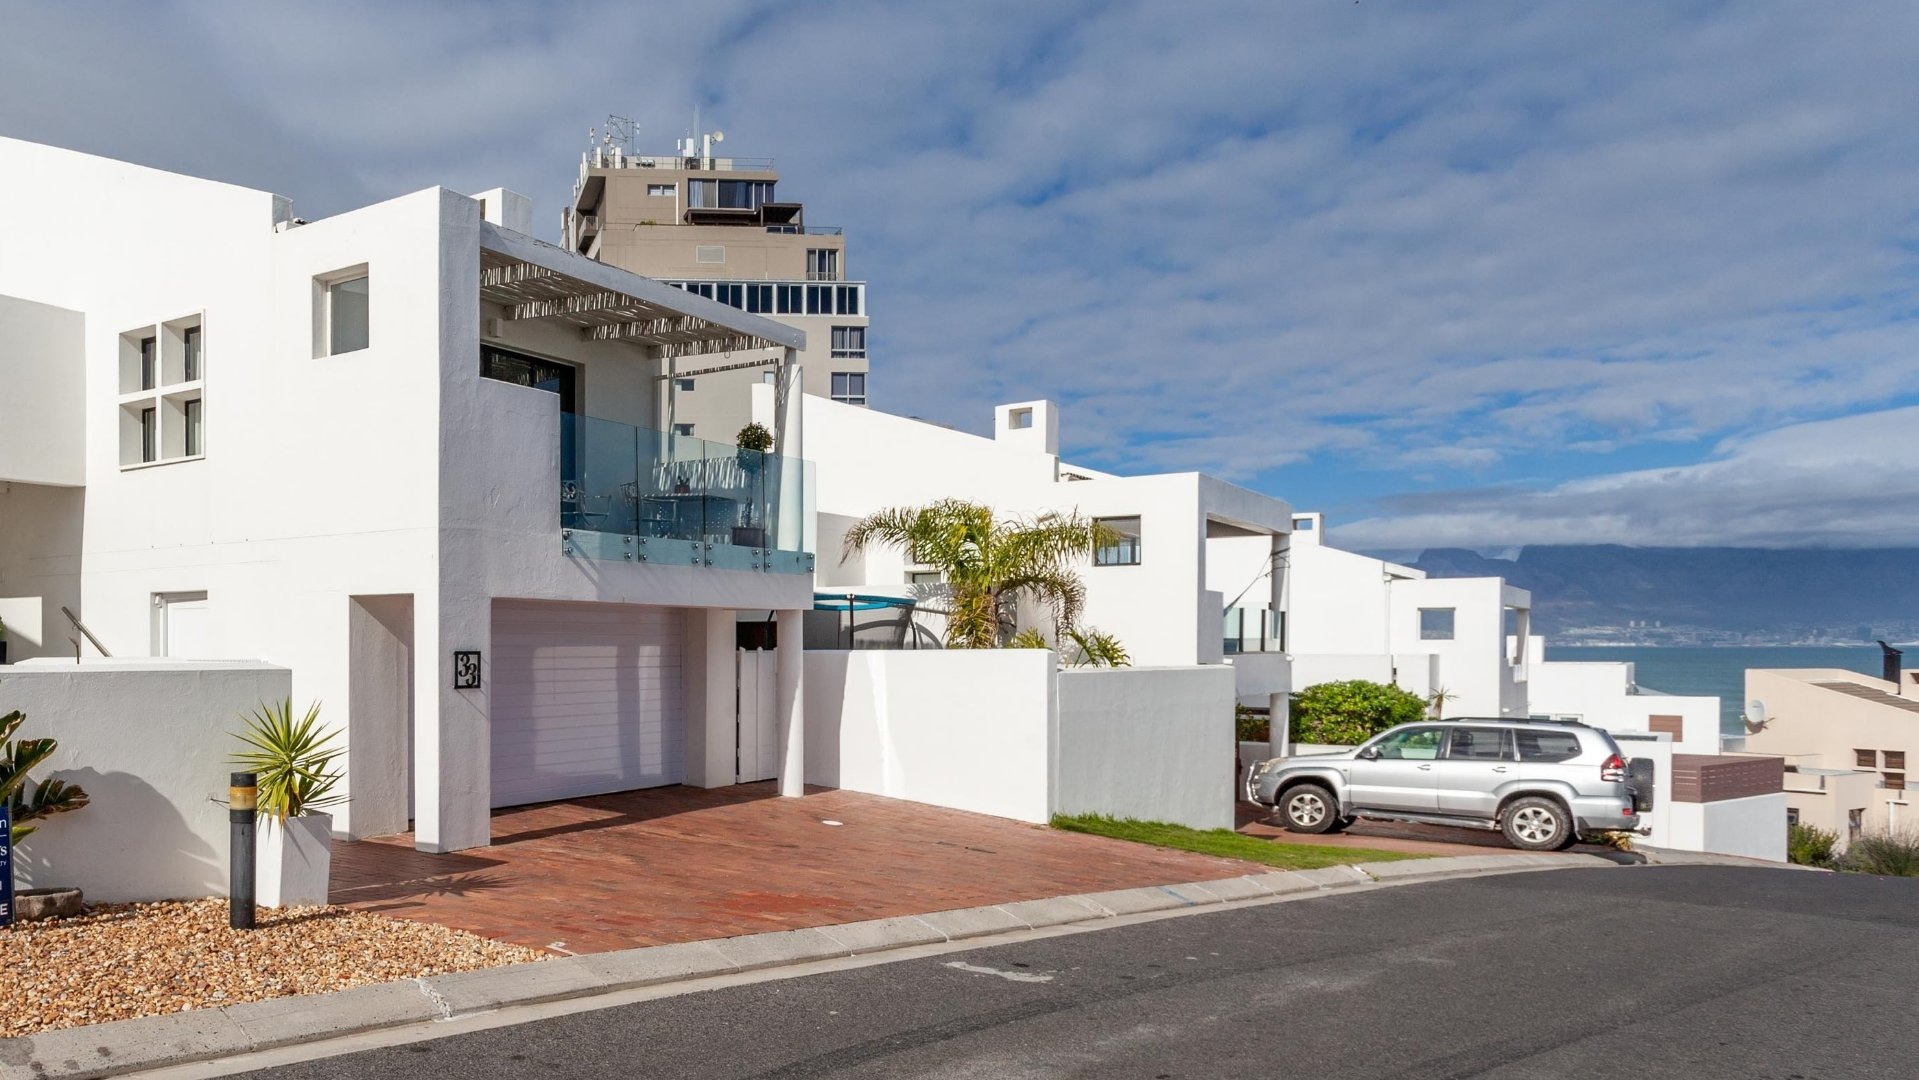 3 Bedroom House For Sale in Bloubergstrand